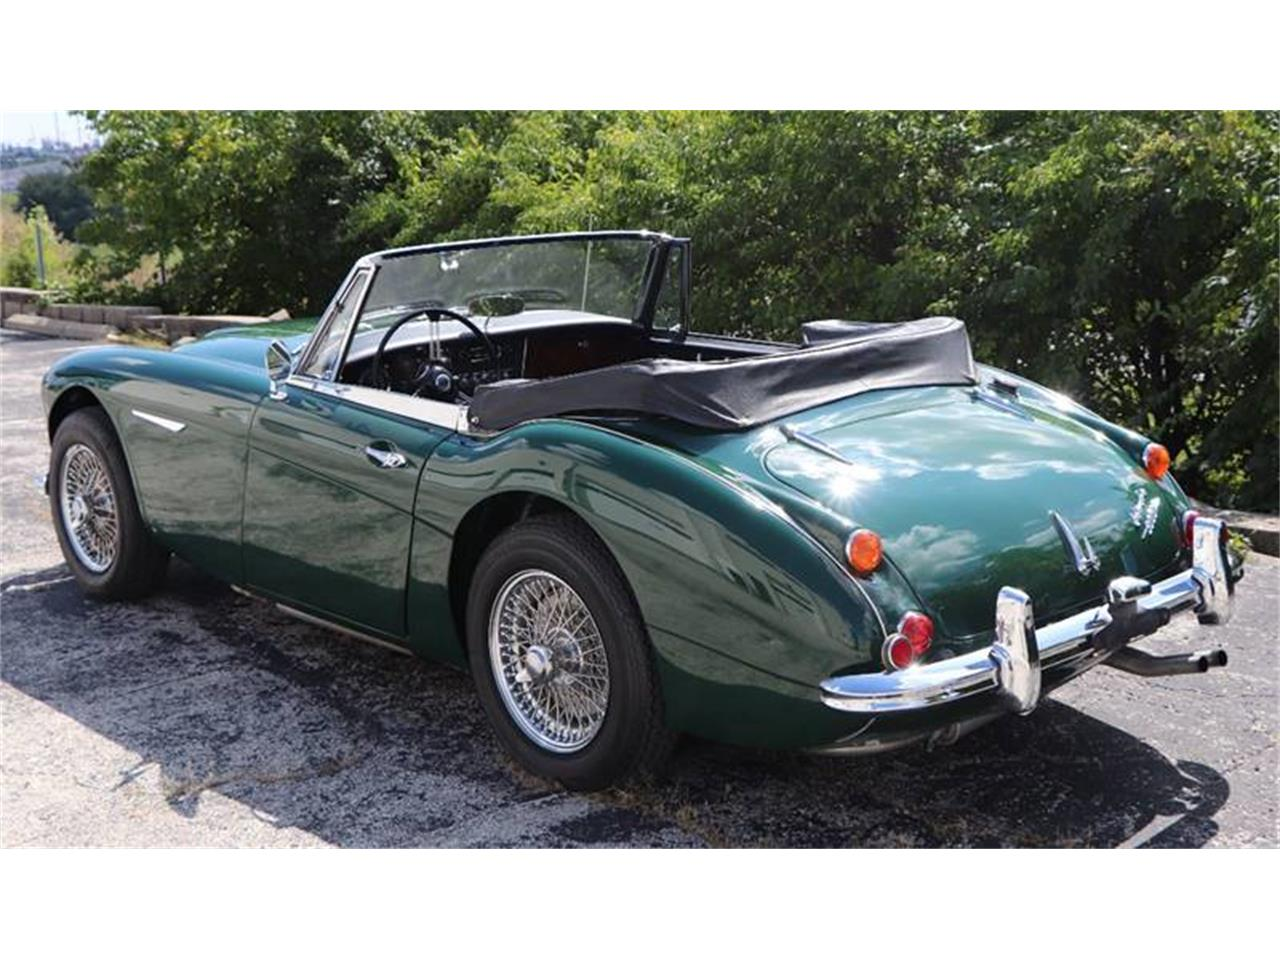 1967 Austin-Healey 3000 Mark III BJ8 for sale in St Louis, MO – photo 6